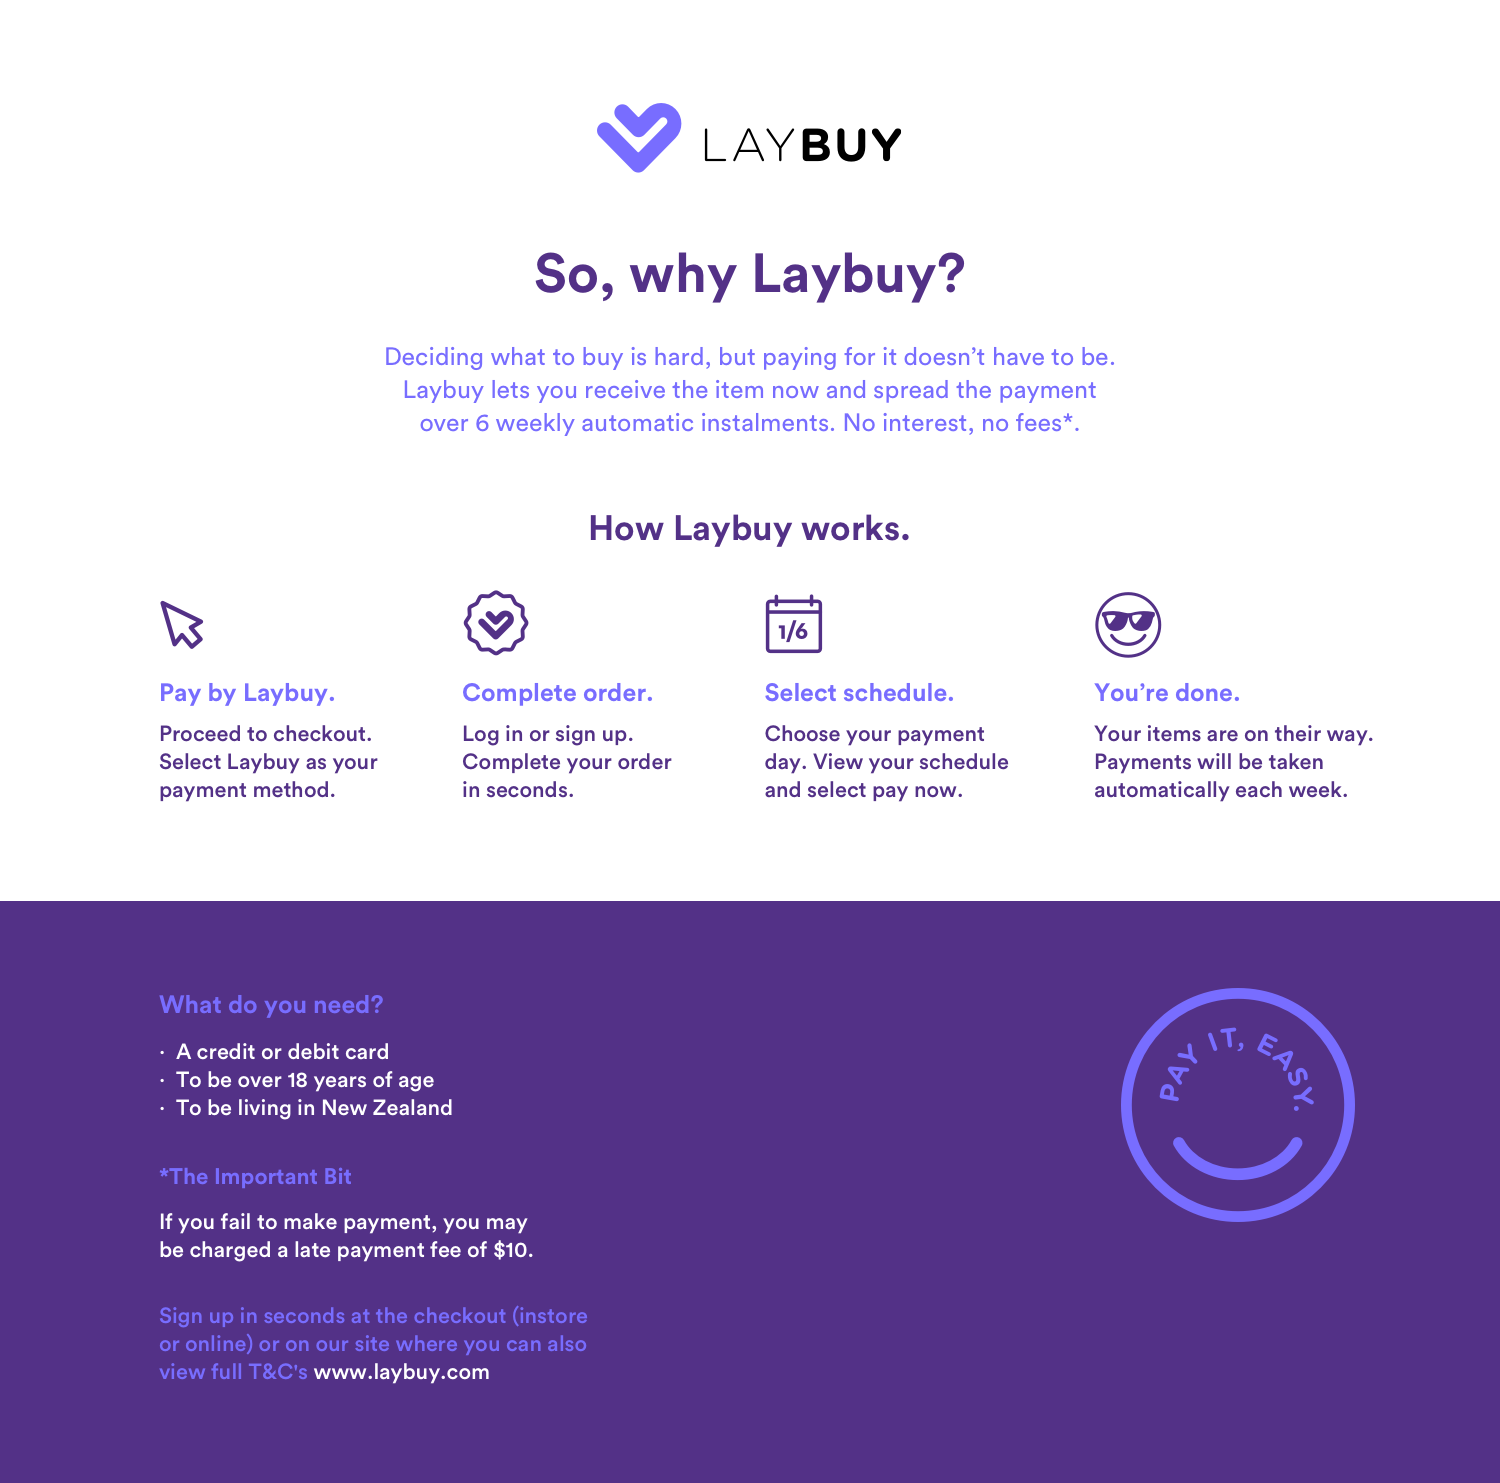 So, Why Laybuy? Overview